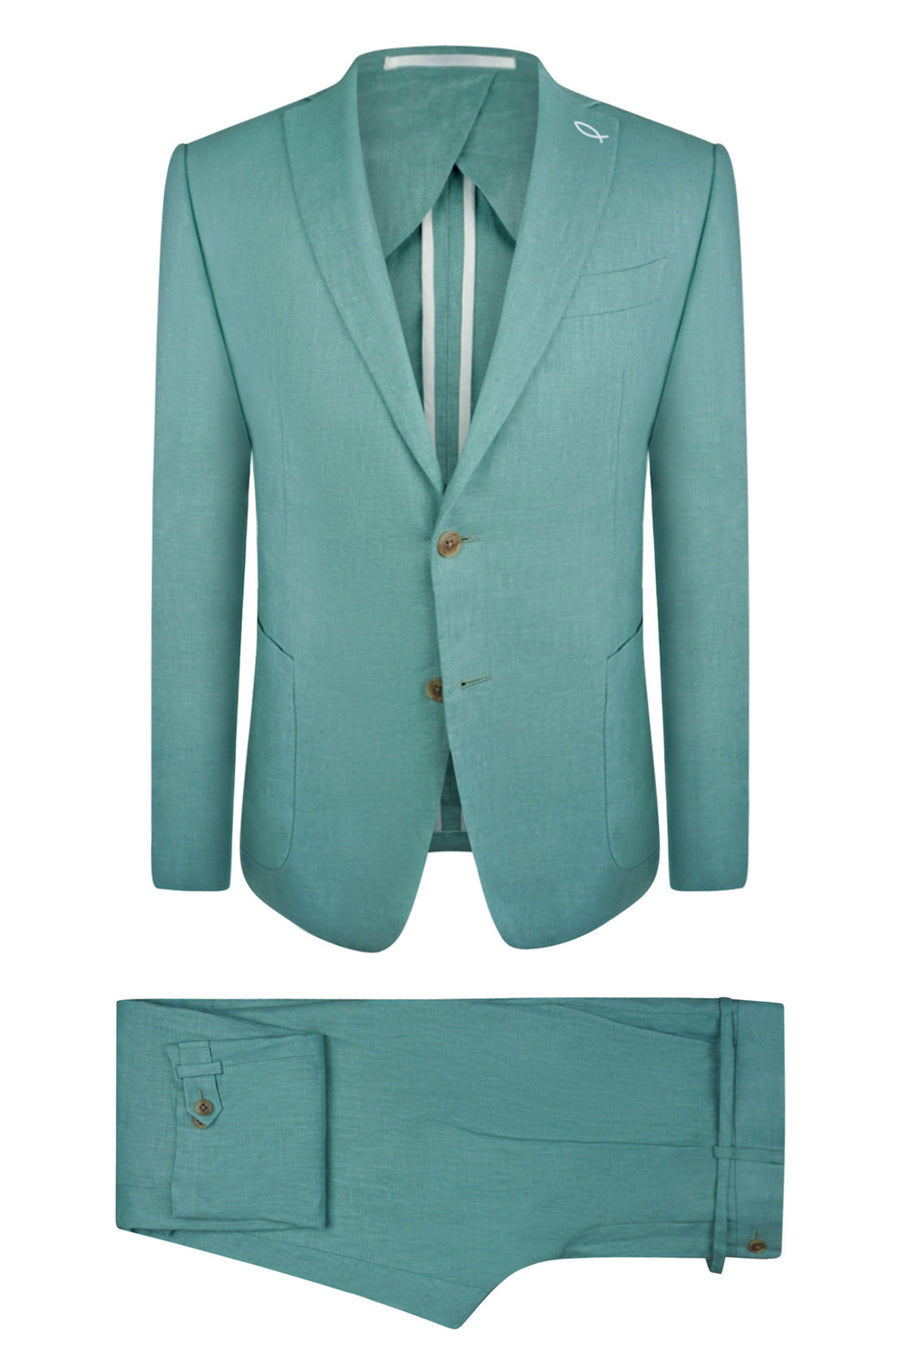 Seafoam Linen Suit Jacket